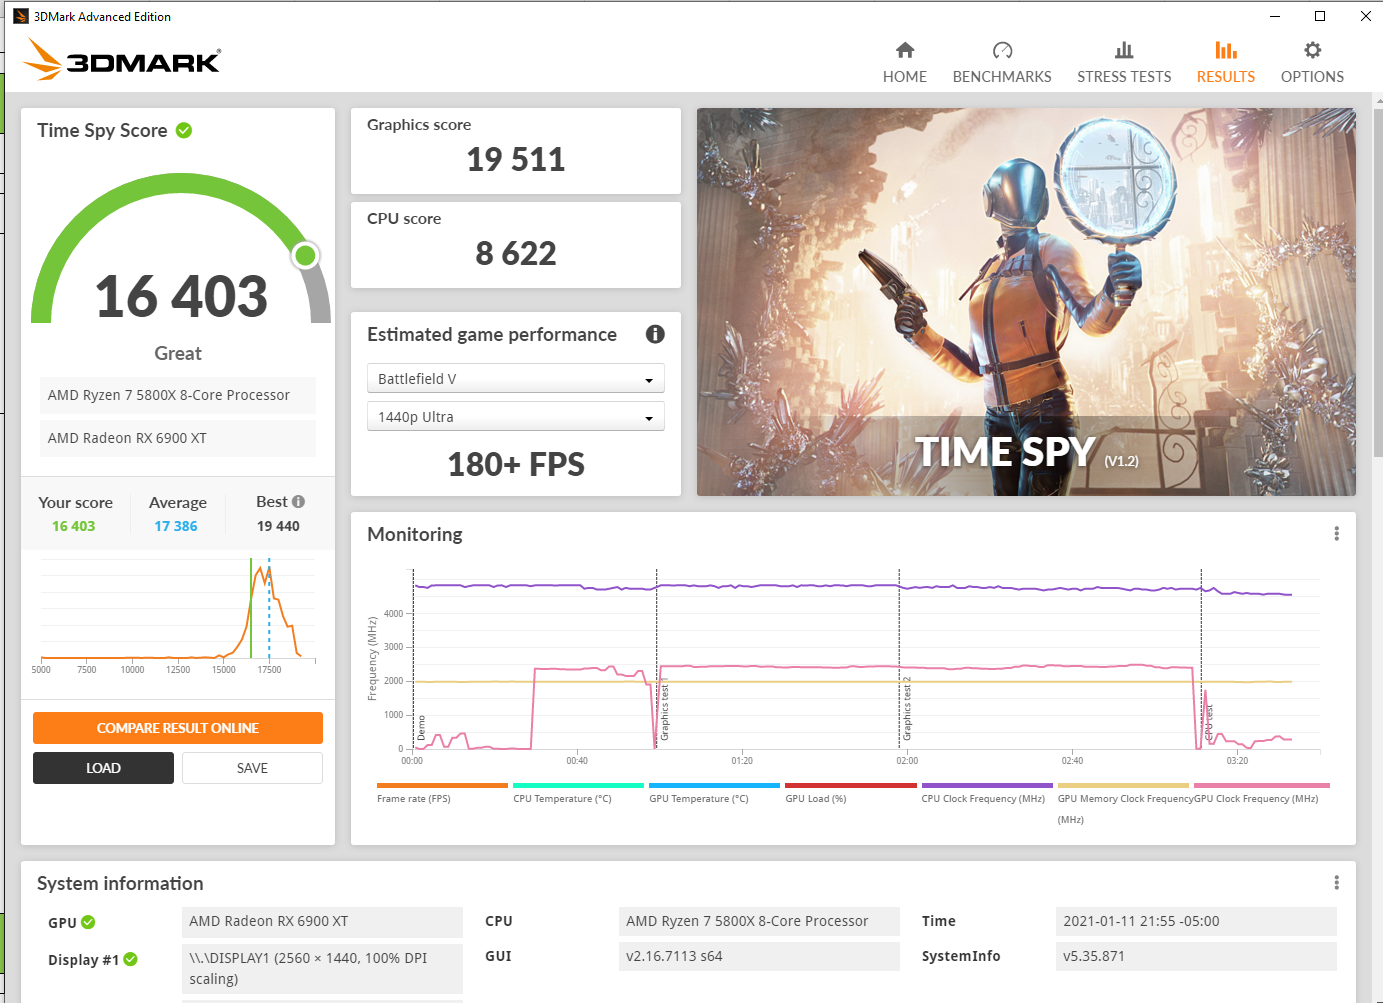 3dmark results.png